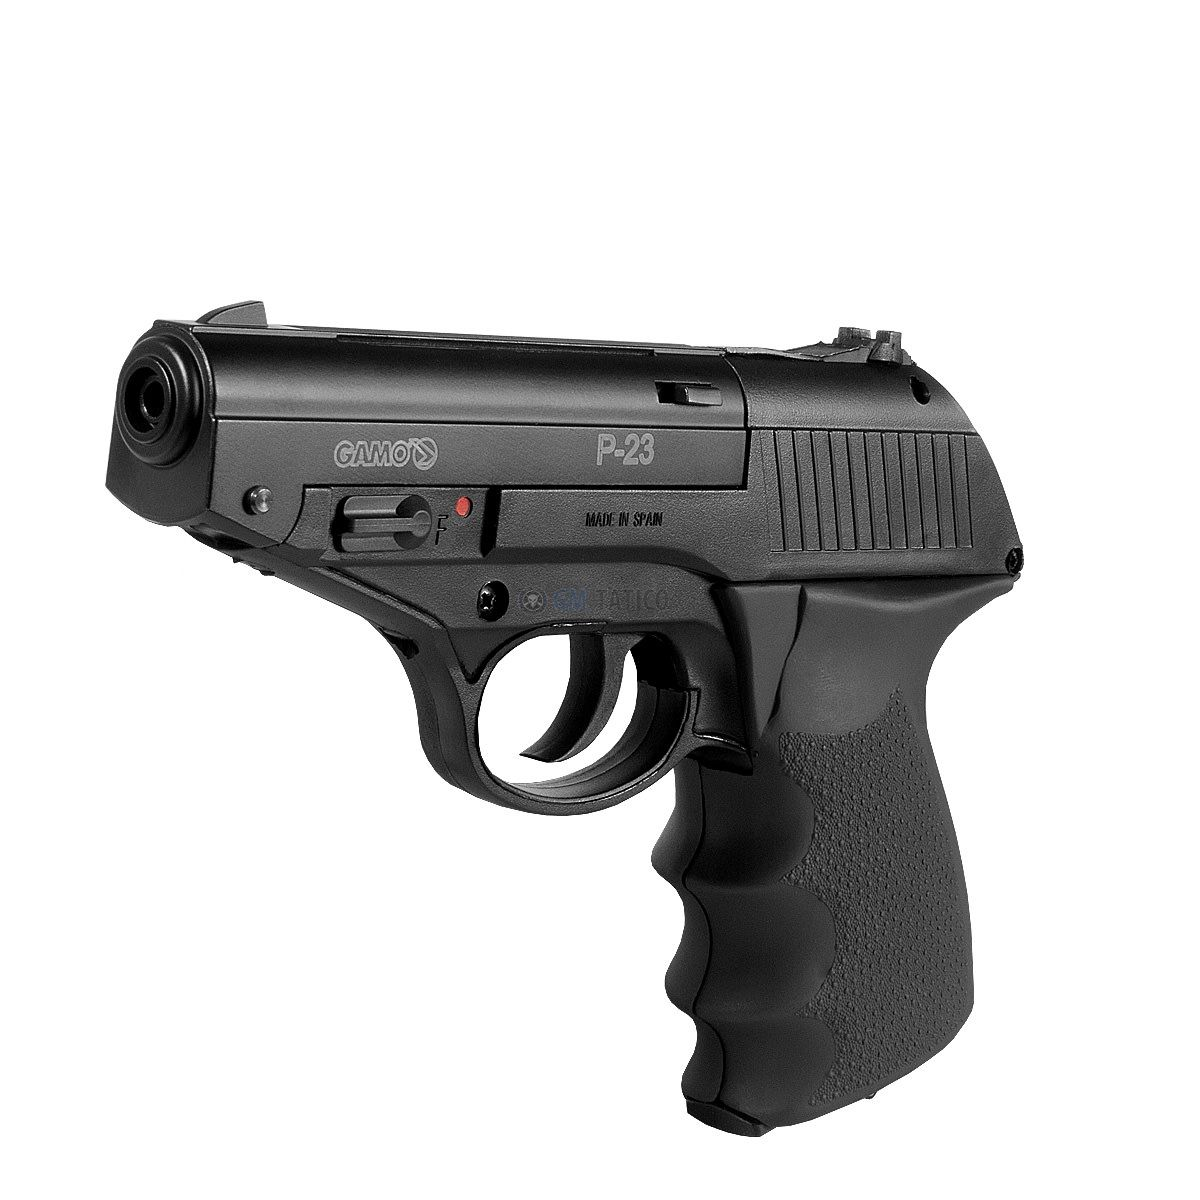 Pistola de Pressão CO2 Gamo P-23 4,5 mm